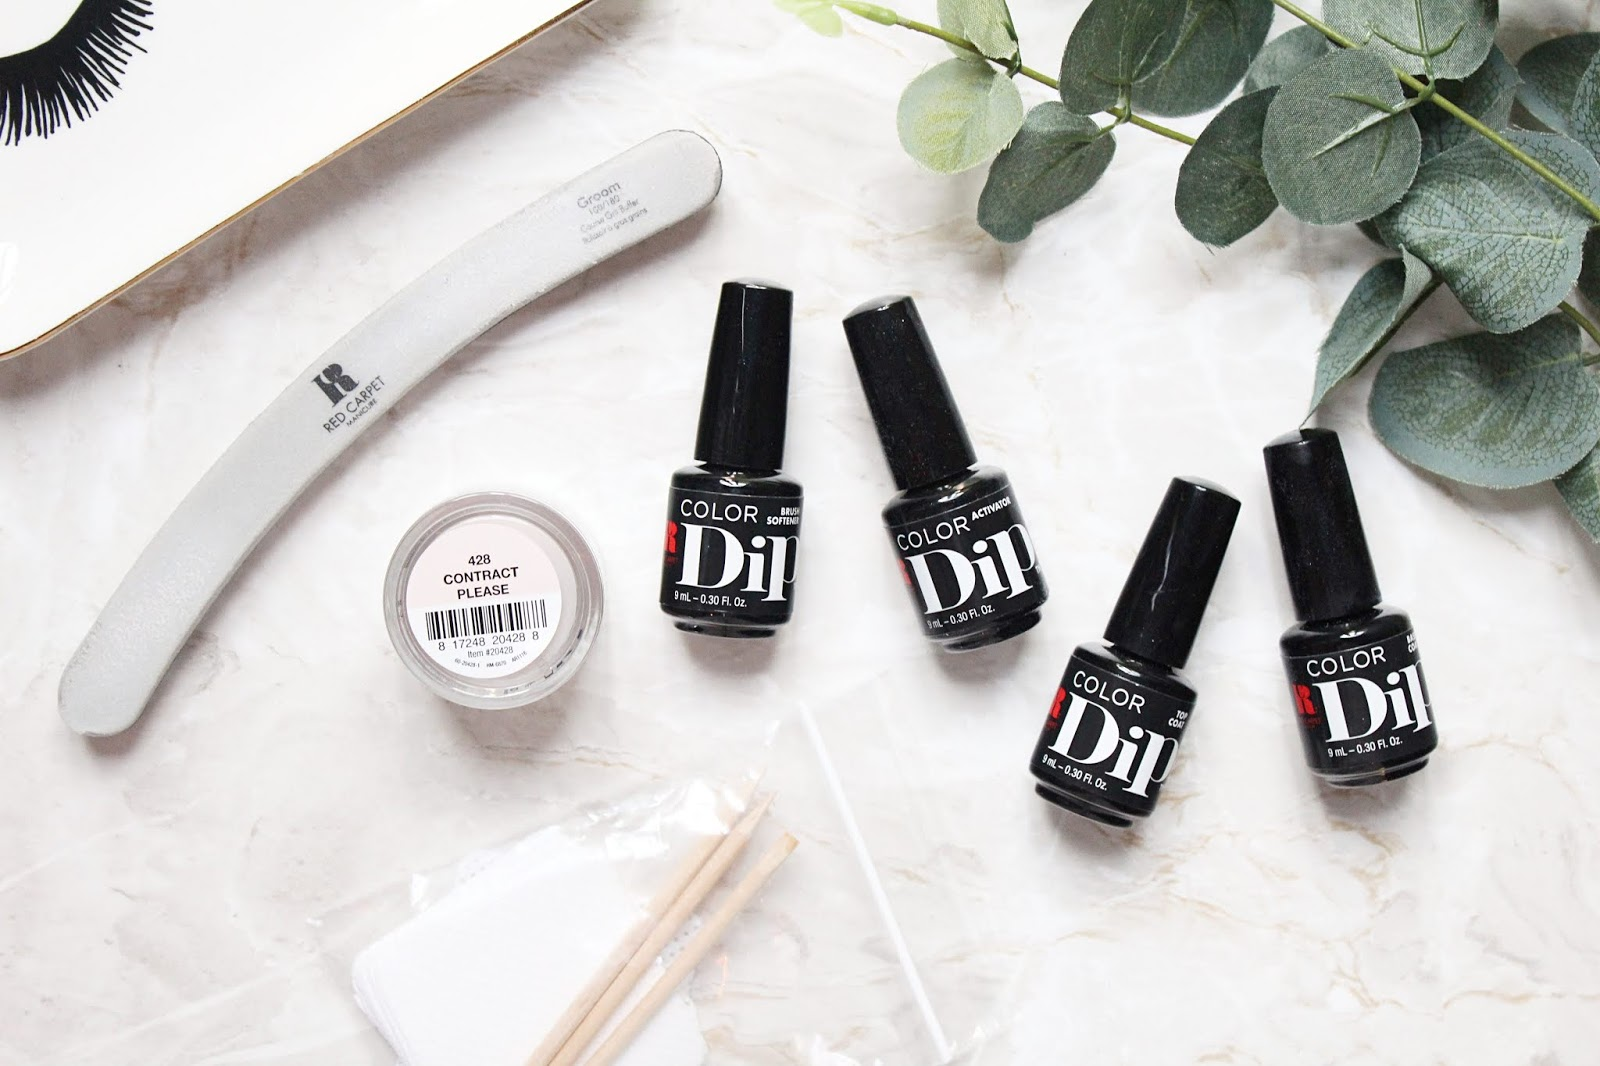 Red Carpet Manicure Colour Dip Starter Kit Review